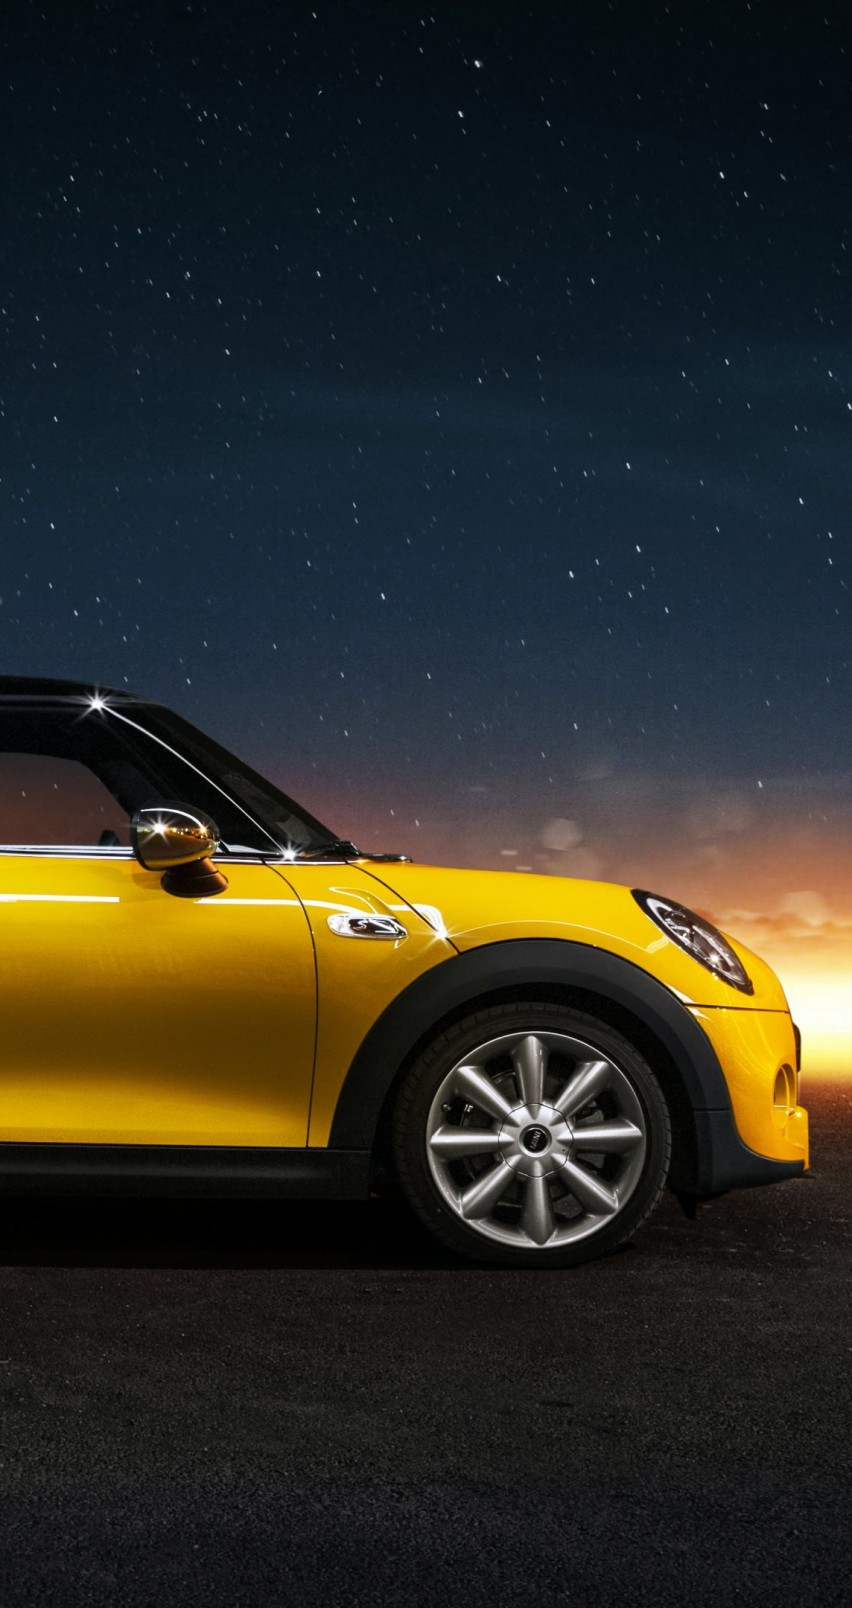 Yellow Mini Cooper S Wallpaper for Apple iPhone 6 / 6s